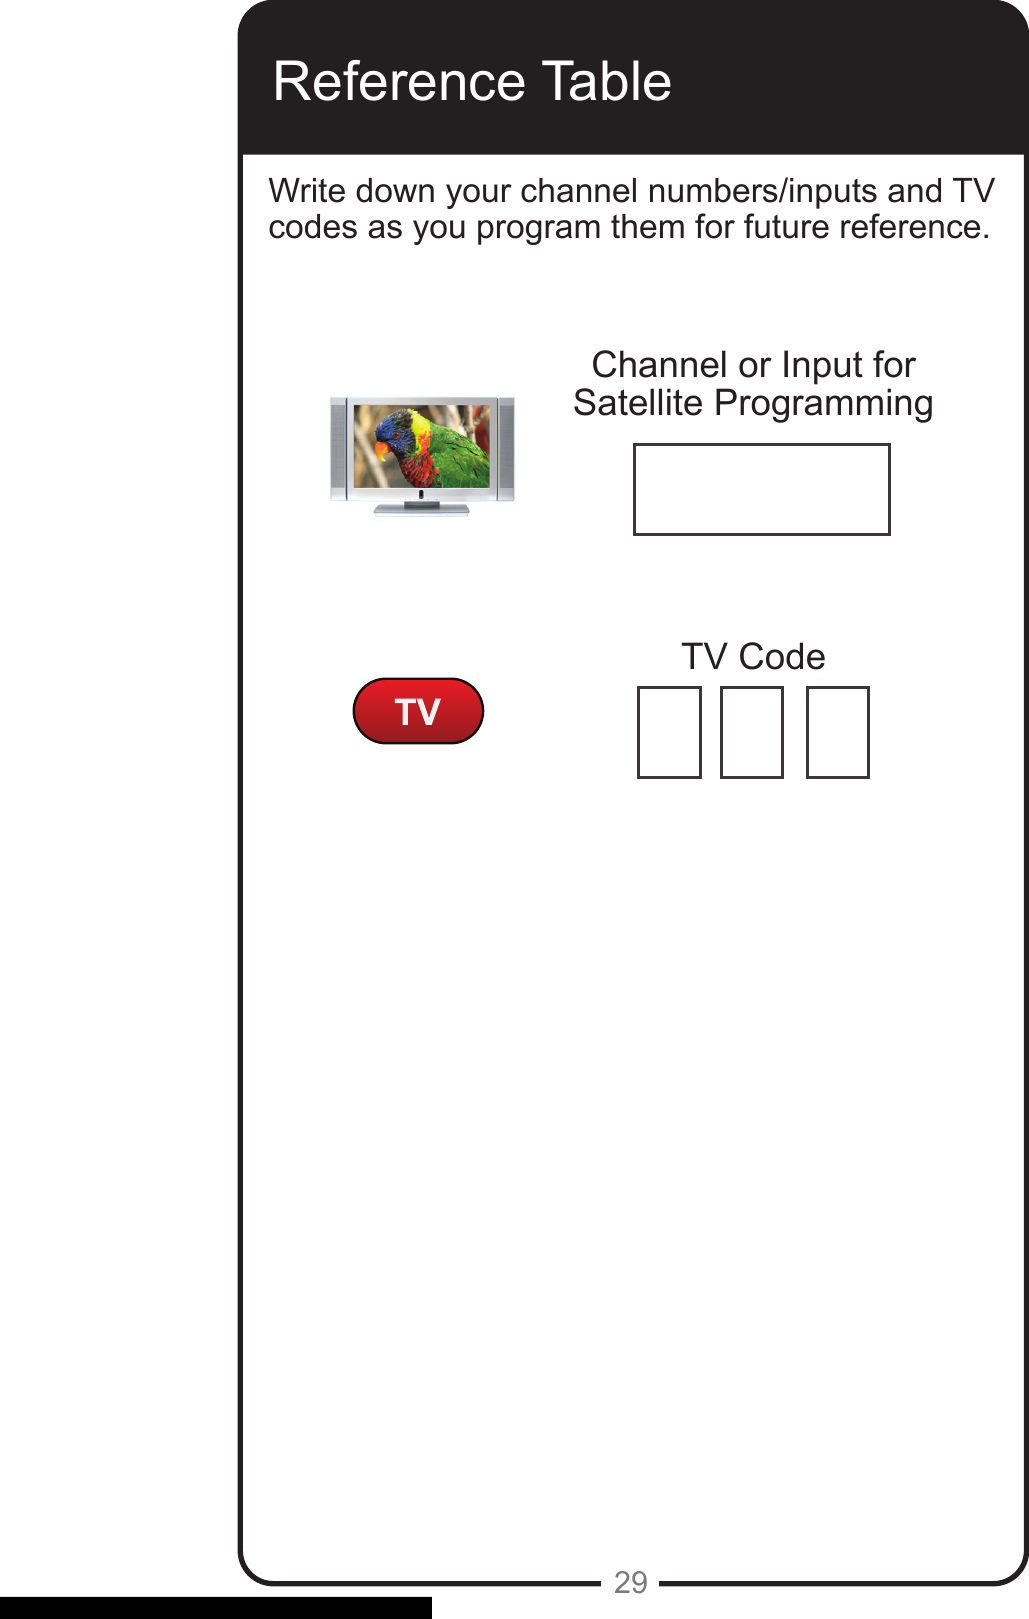 Dish Network Basic Remote Manual 820220 ManualsLib Makes It Easy To